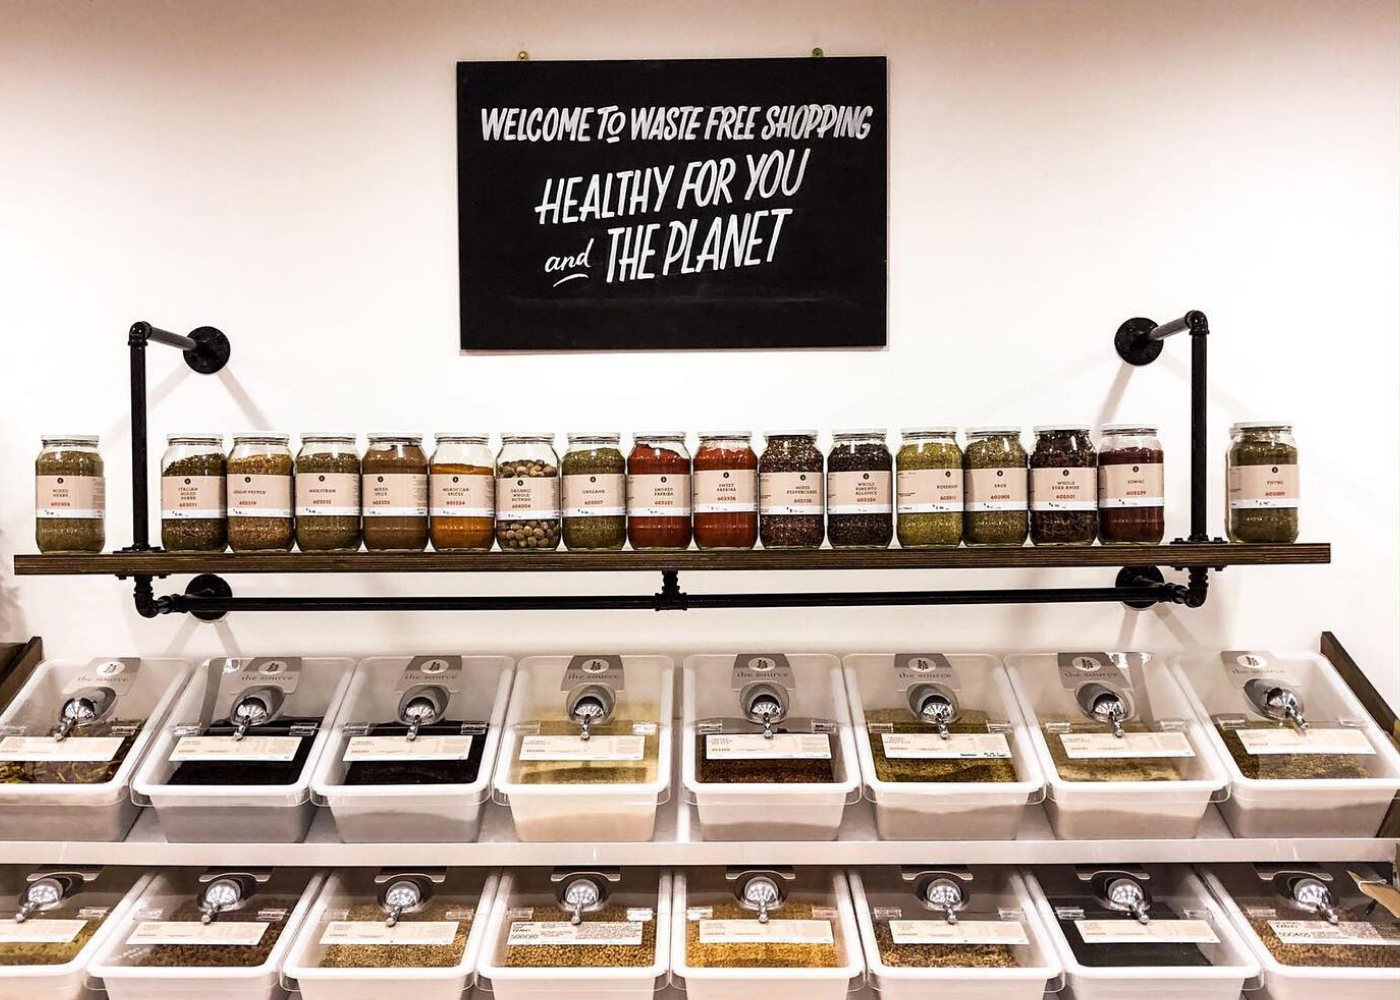 Where to buy organic goodies, fresh greens and superfoods in Singapore: The Source Bulk Foods